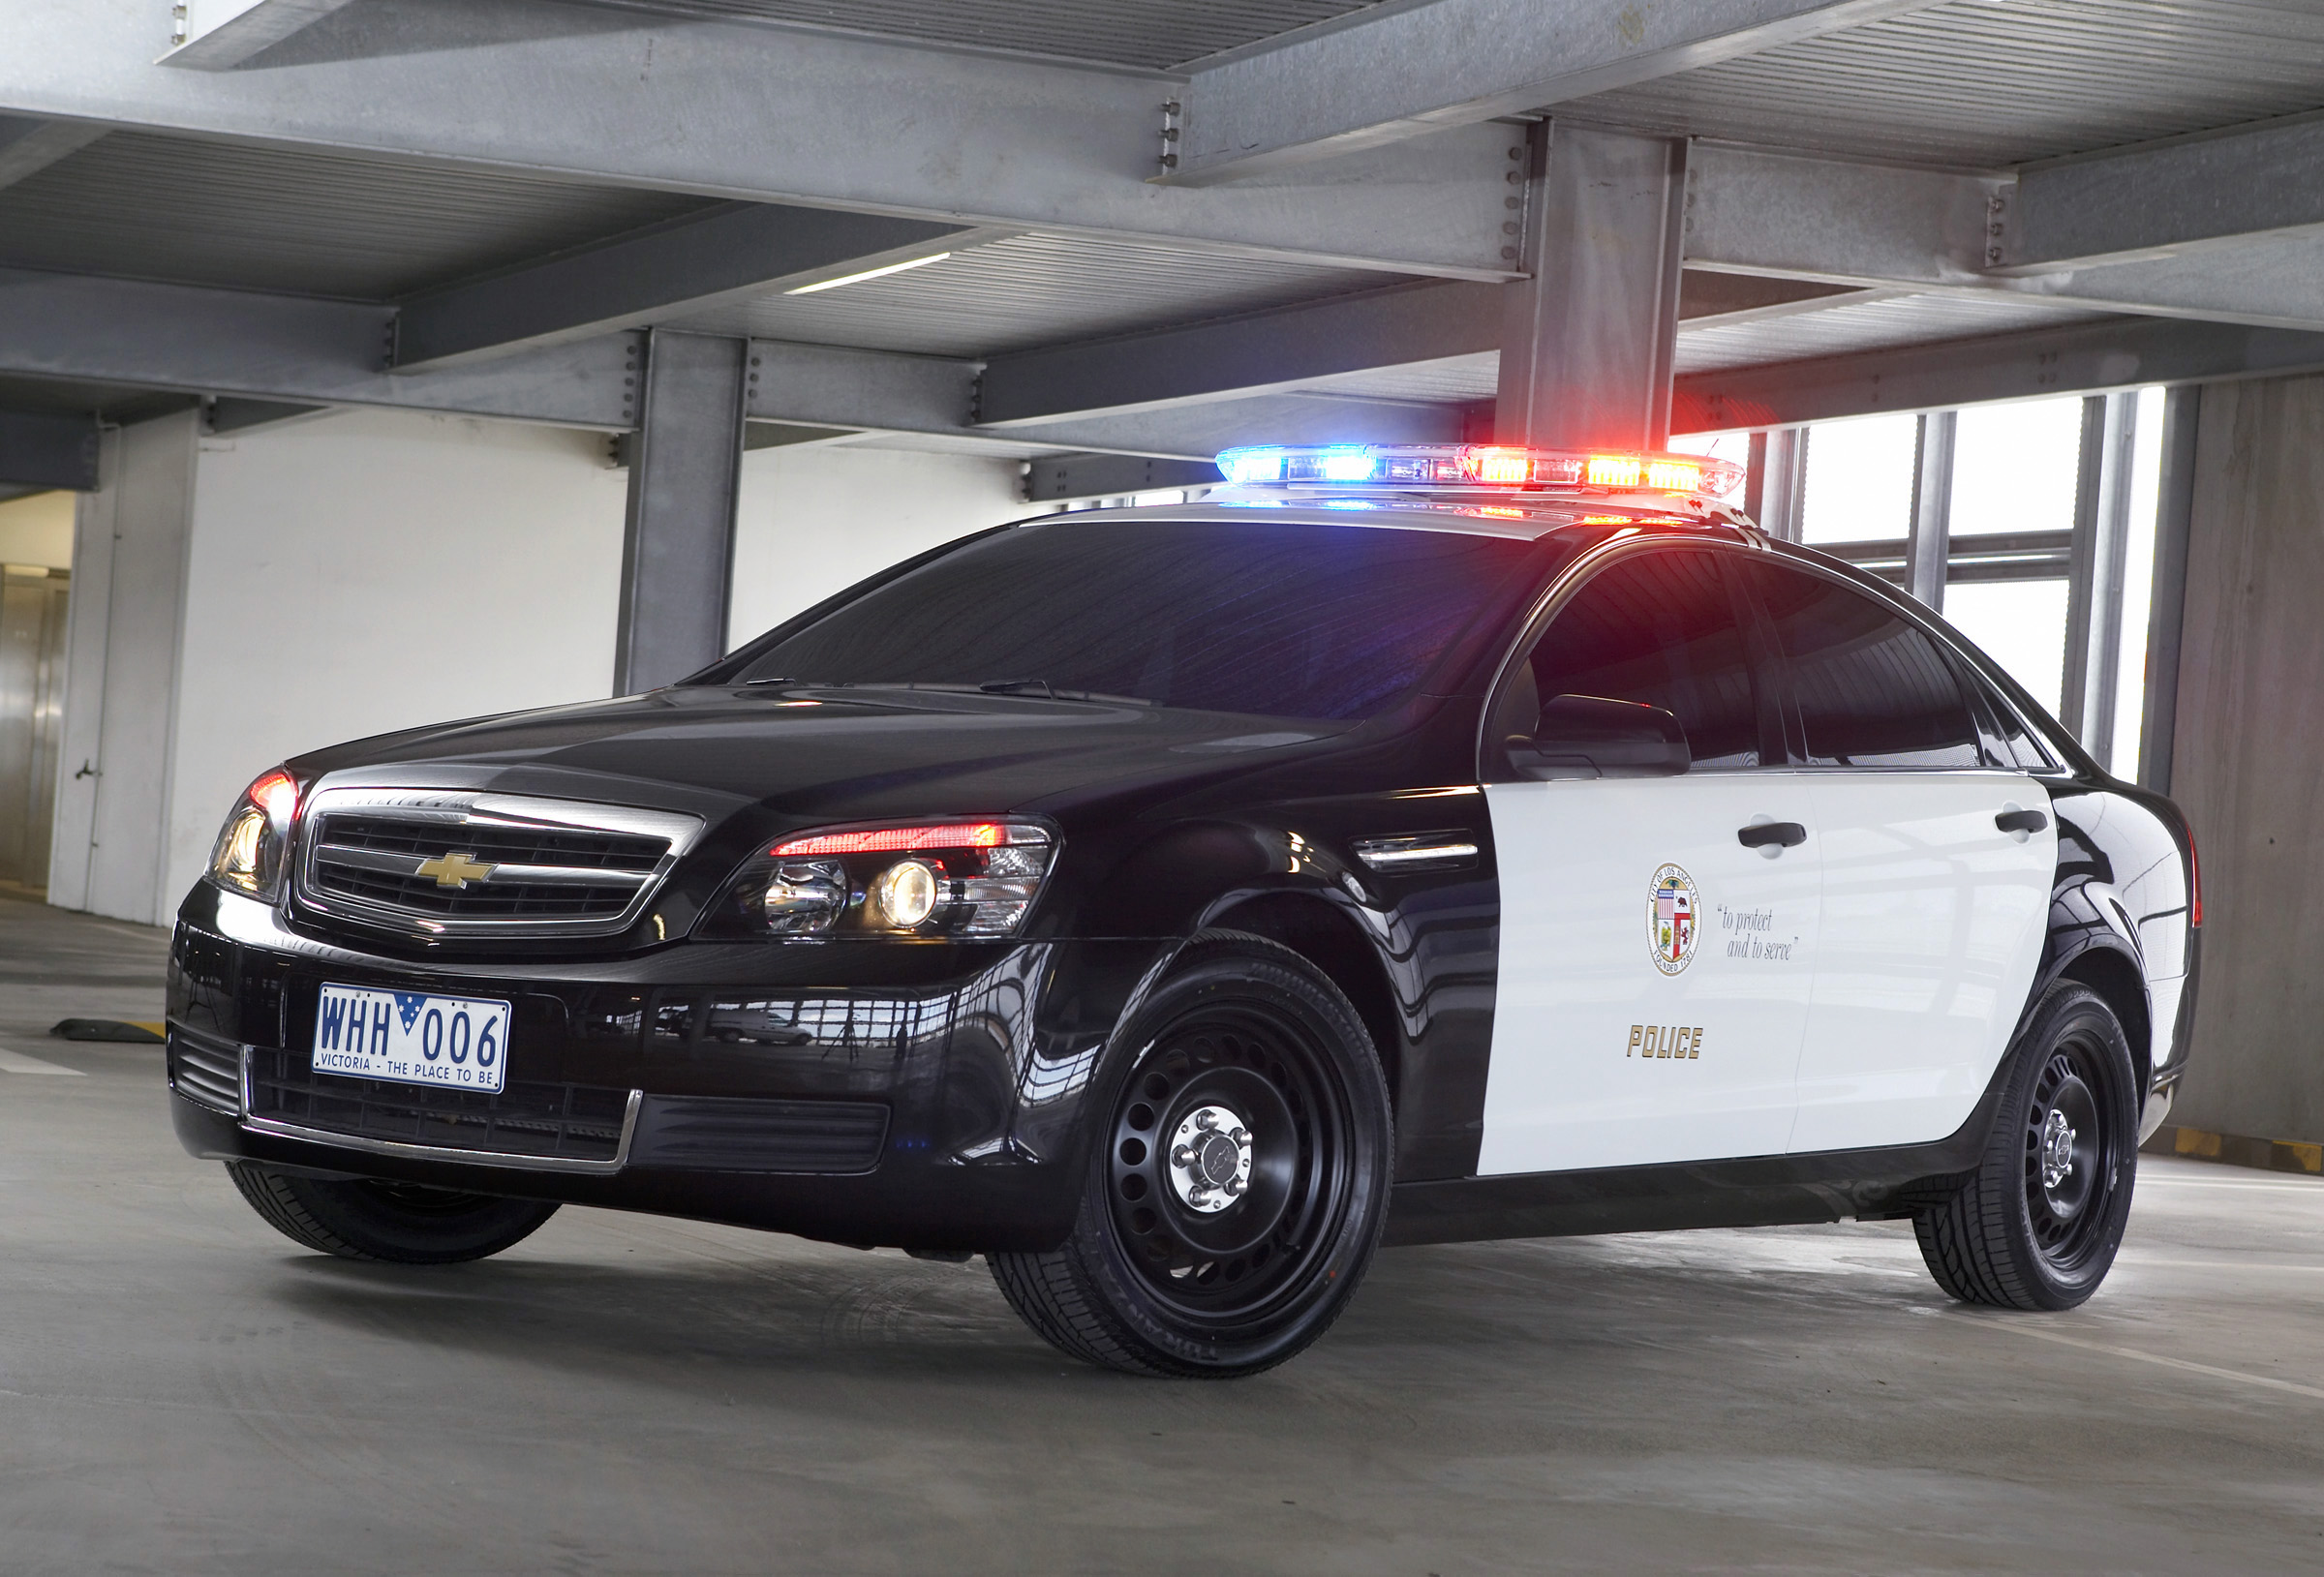 Chevrolet Caprice Police Patrol Vehicle With